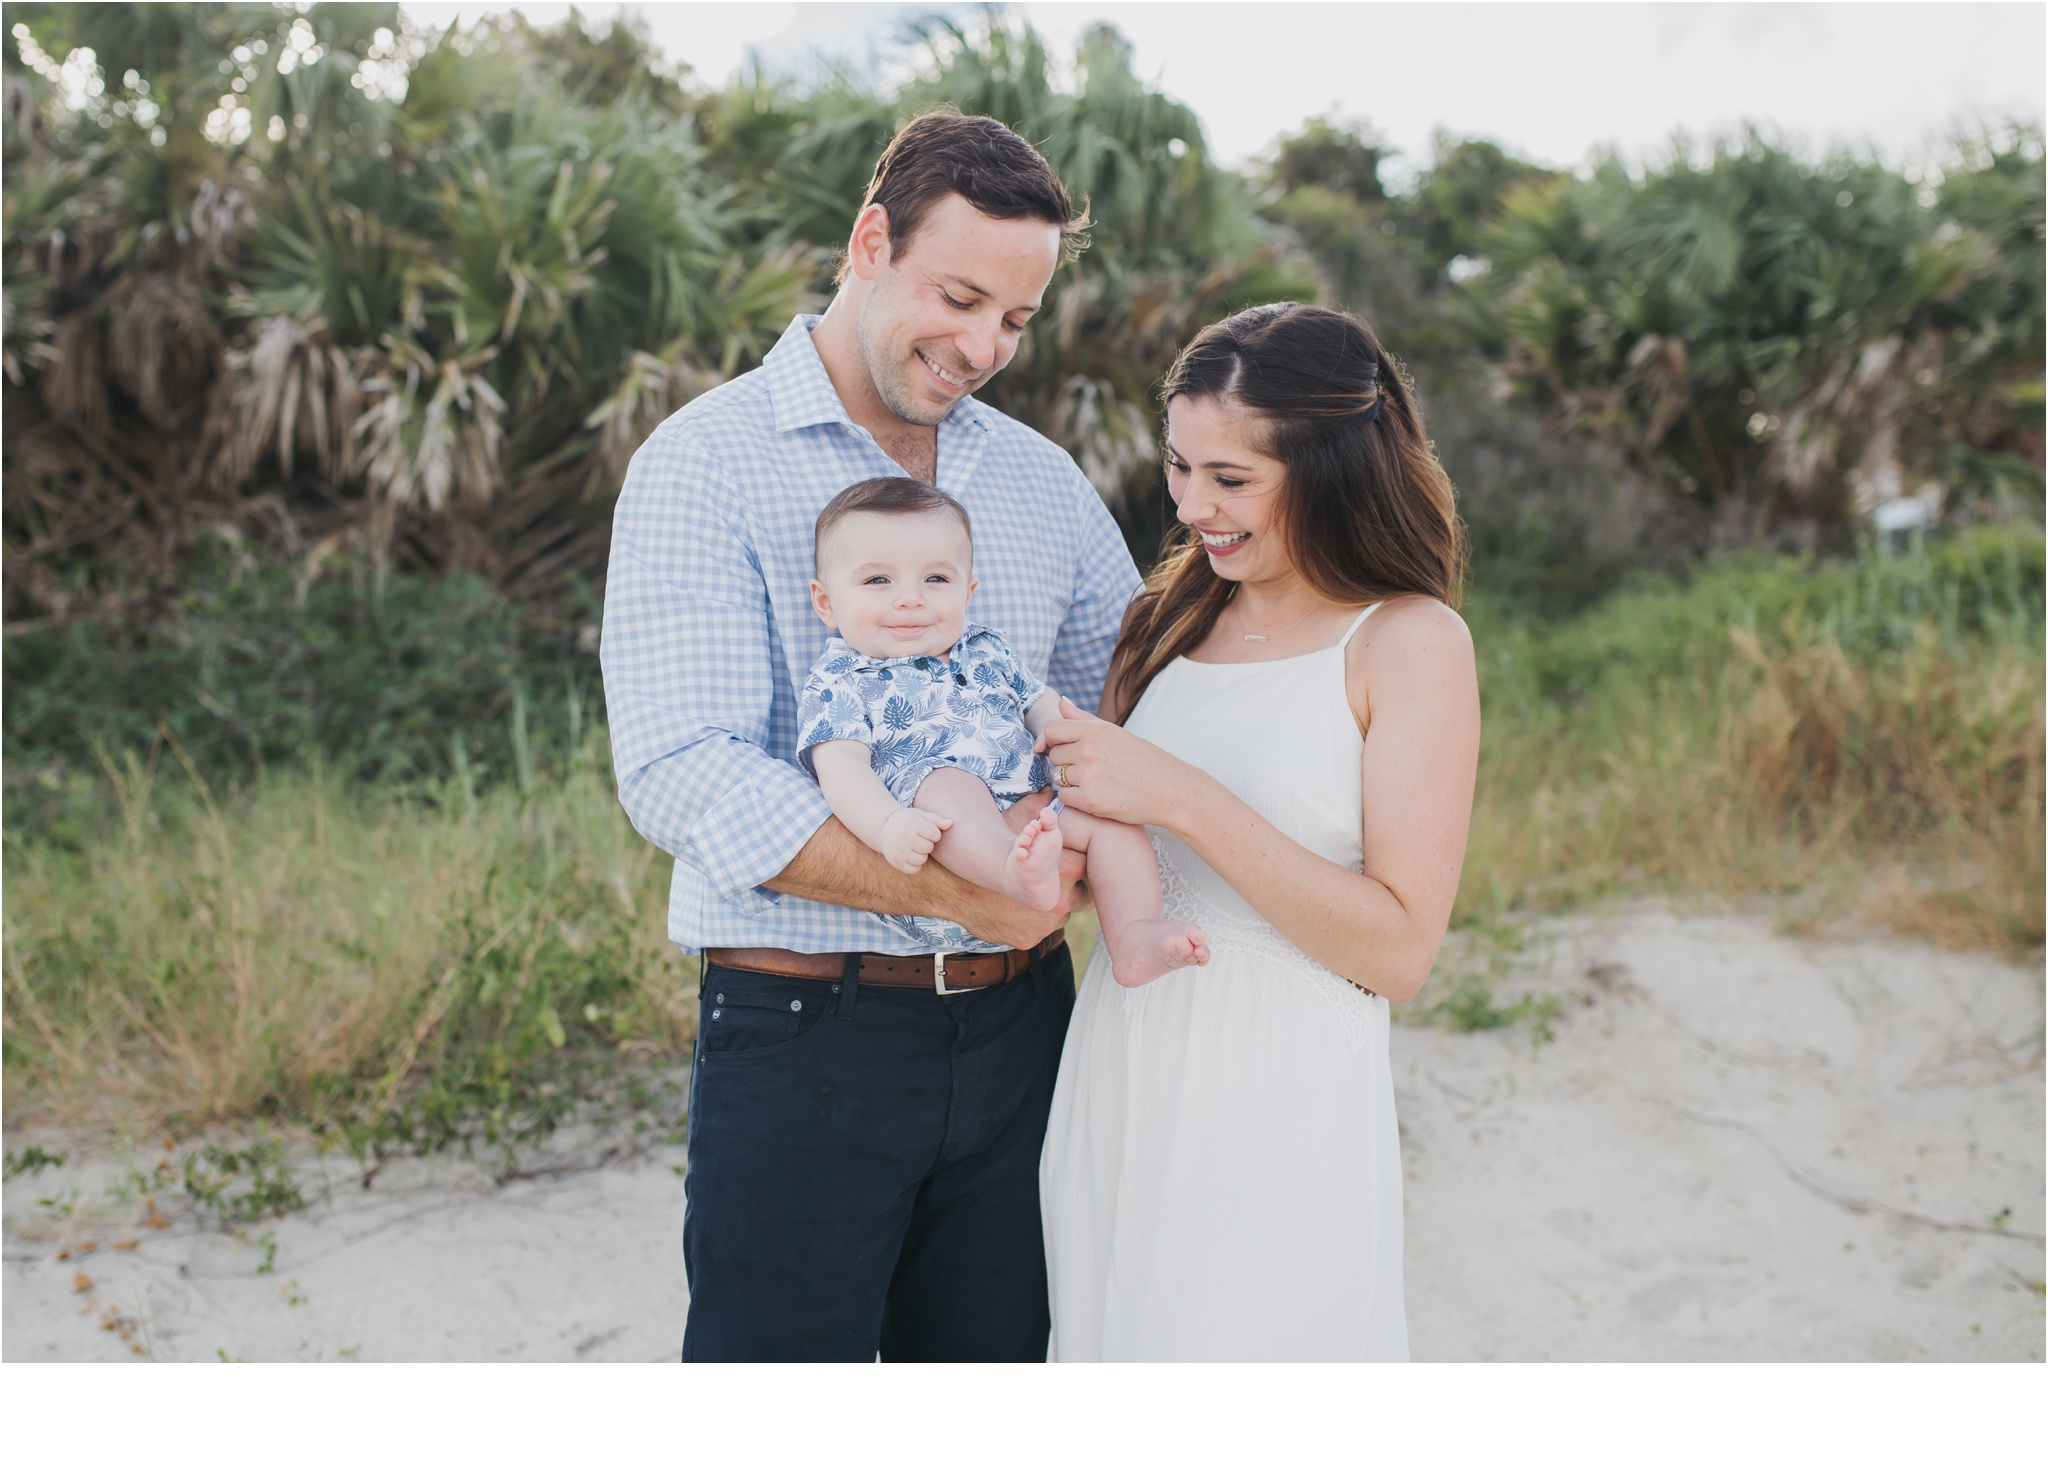 Rainey_Gregg_Photography_St._Simons_Island_Georgia_California_Wedding_Portrait_Photography_1464.jpg